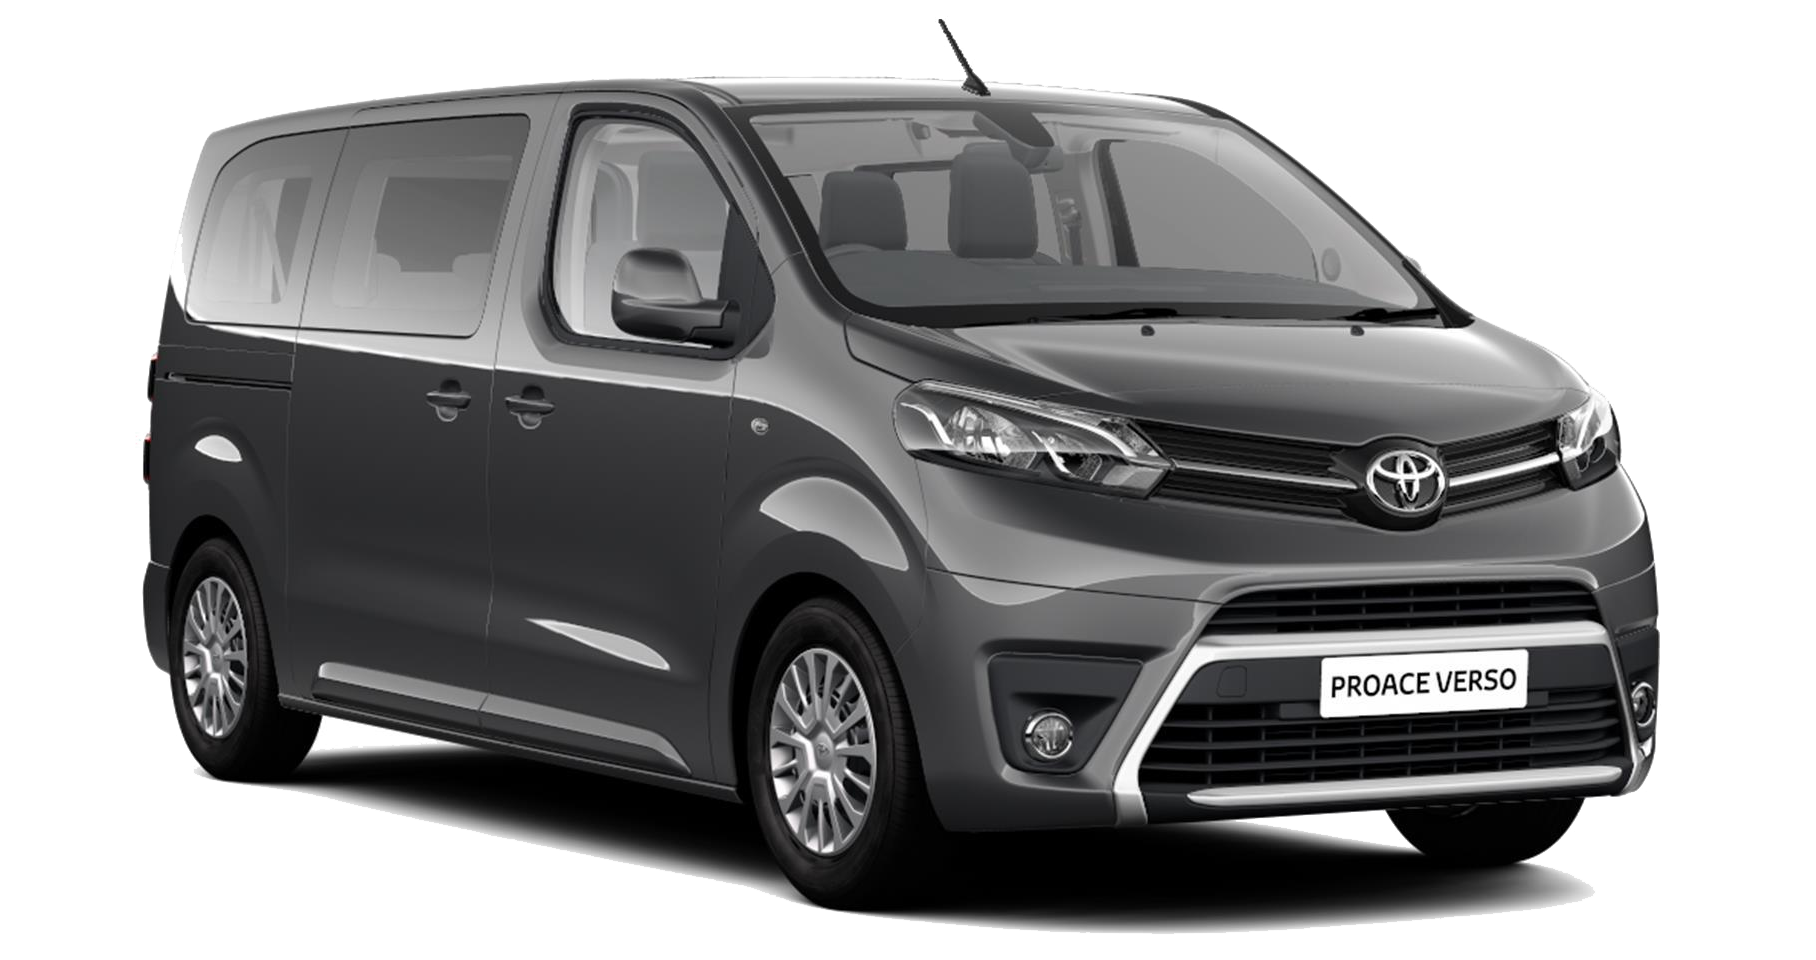 Toyota Proace Verso - Available in Falcon Grey